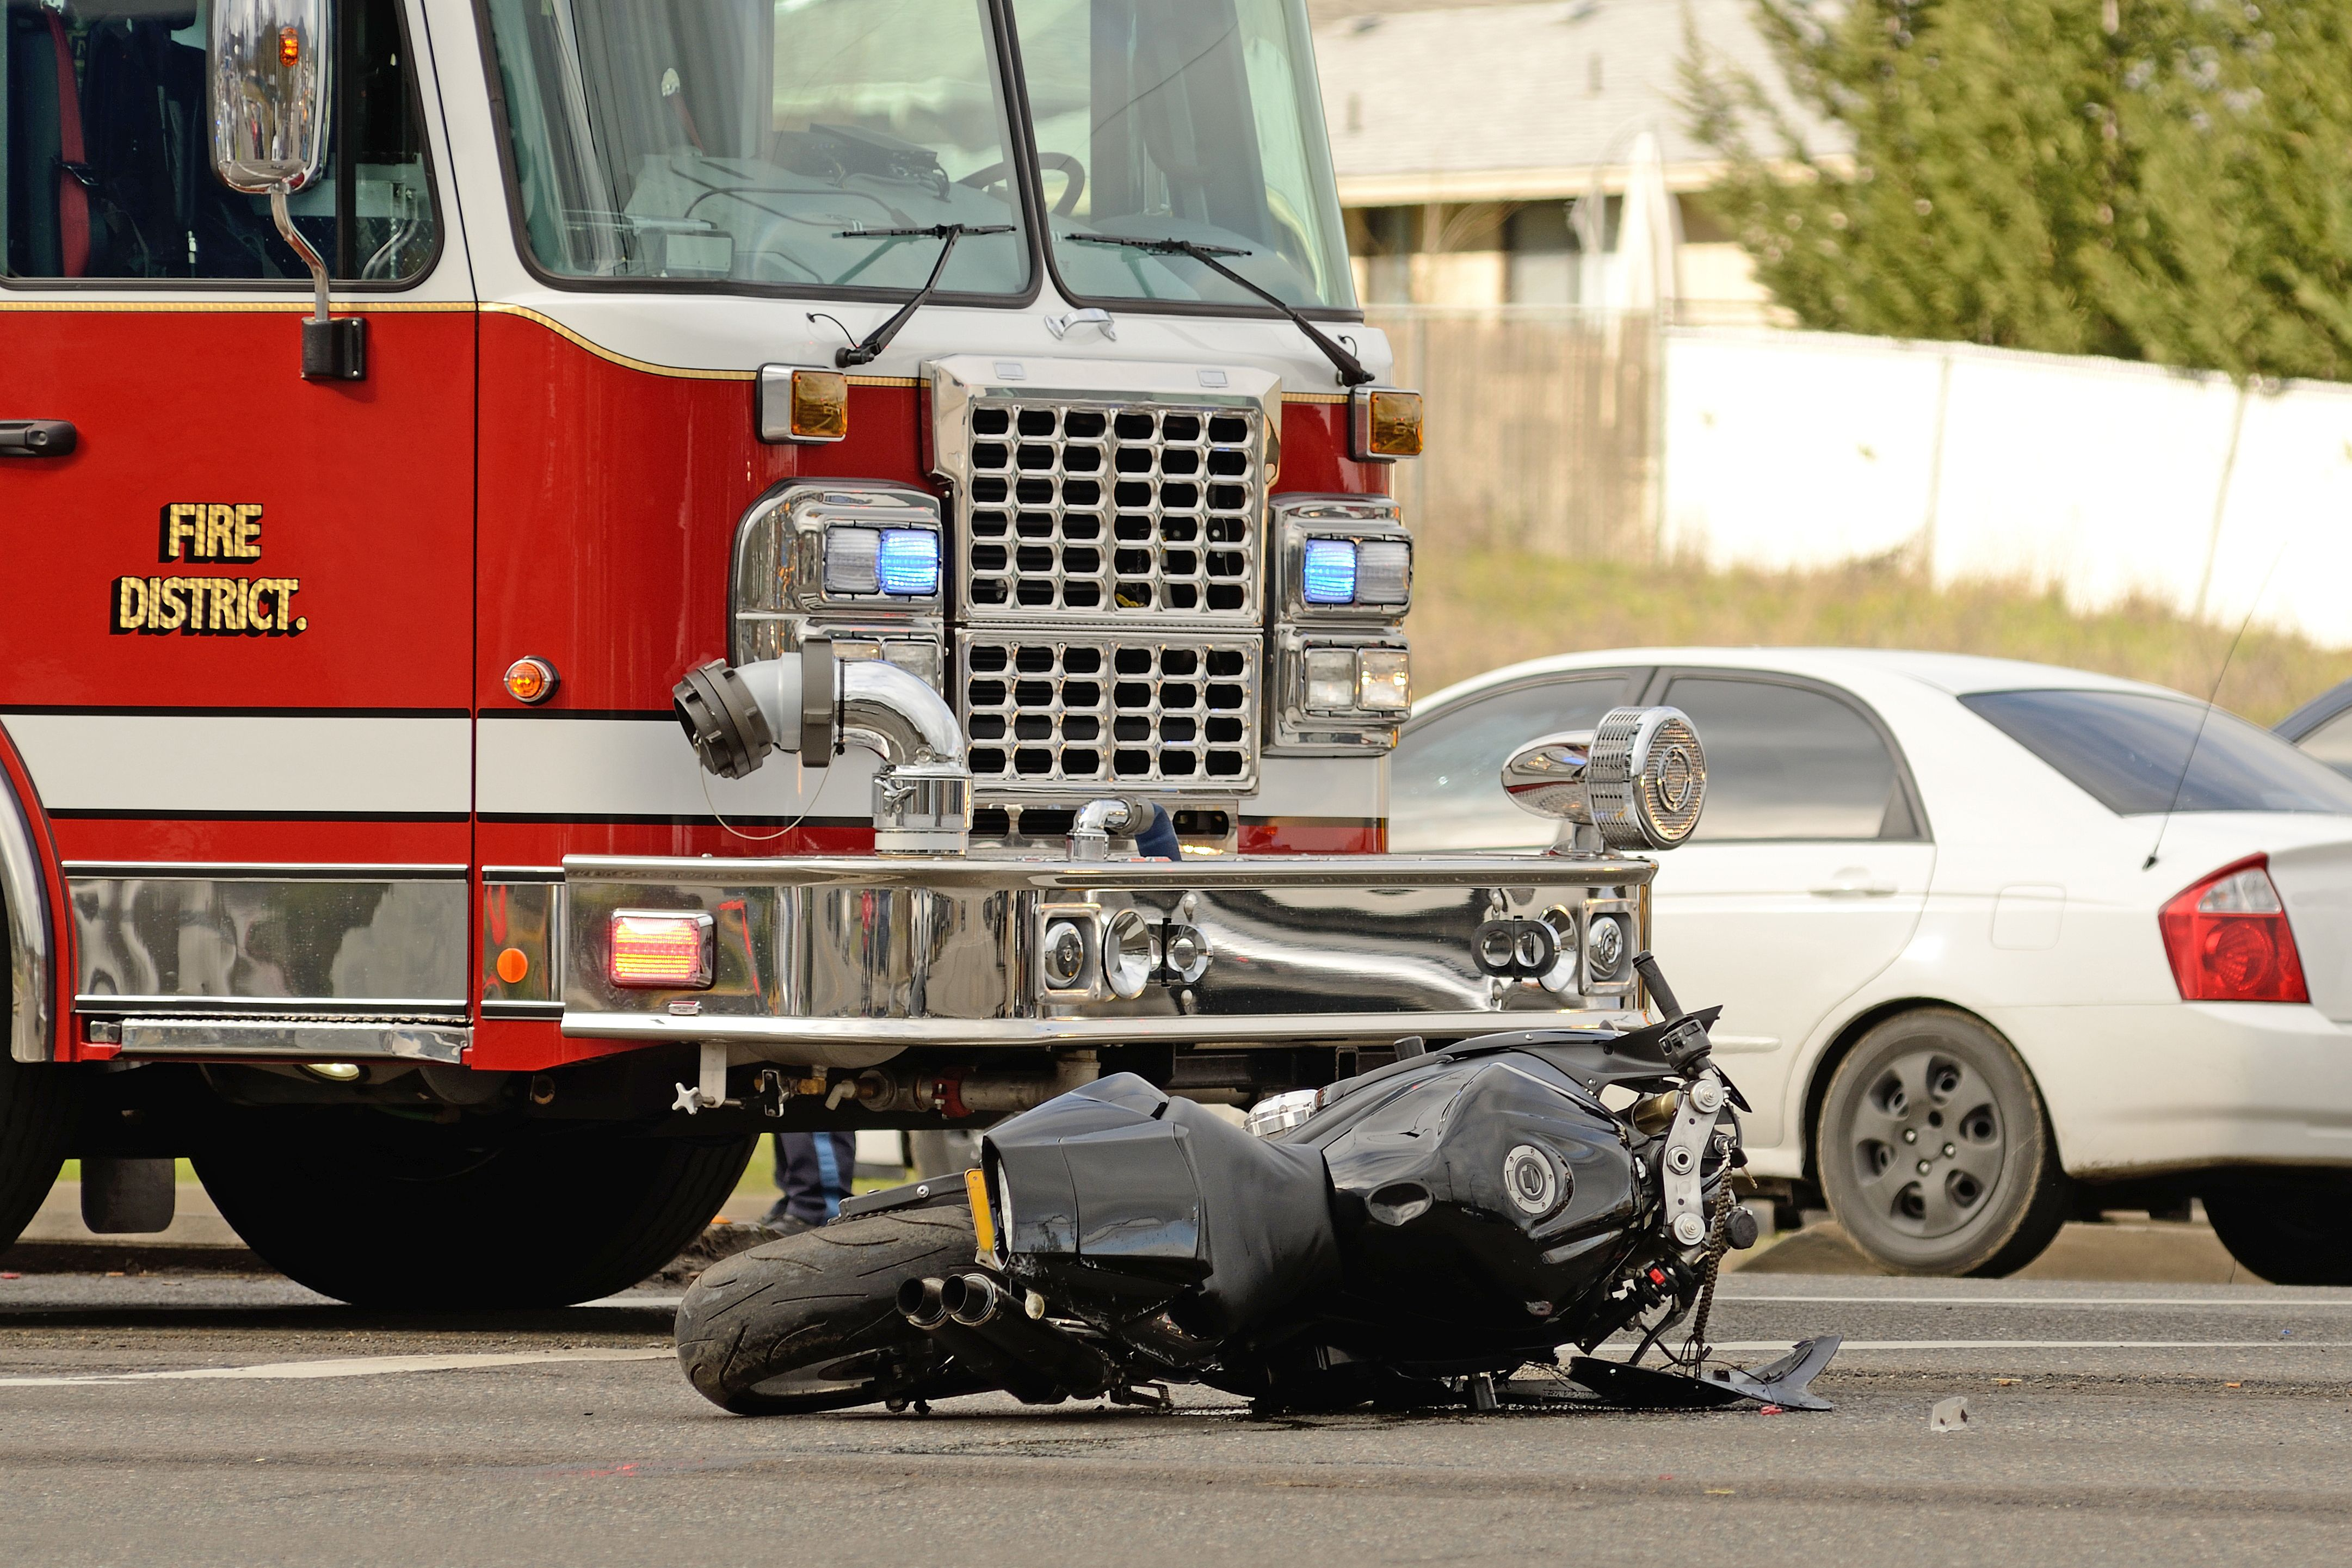 A motorcycle in front of a fire engine after an accident